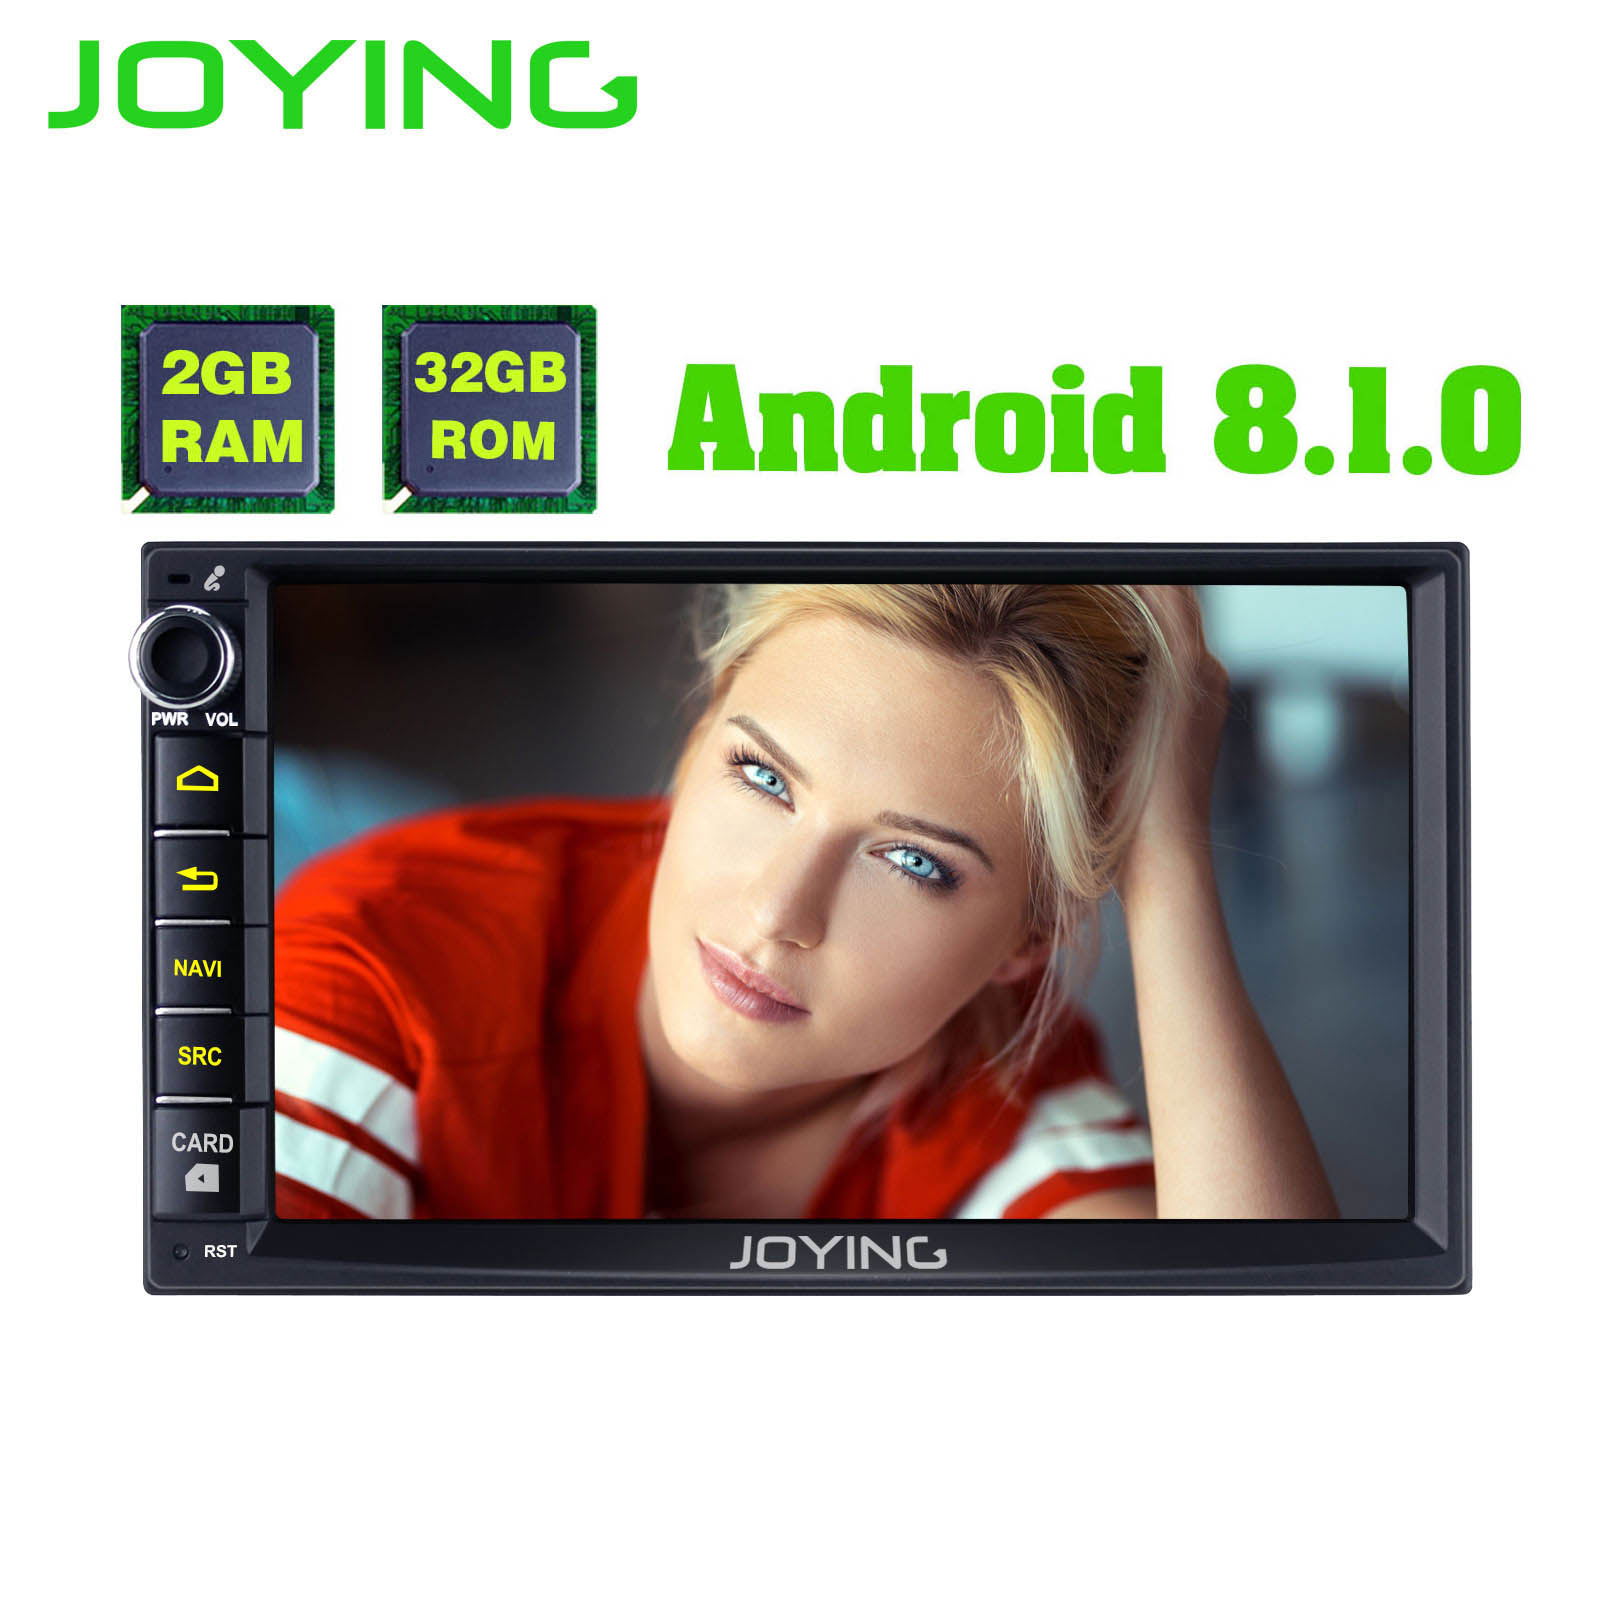 JOYING 7 Head Unit 2GB 32GB Android 8 1 Universal Car Radio Stereo Double 2 2Din